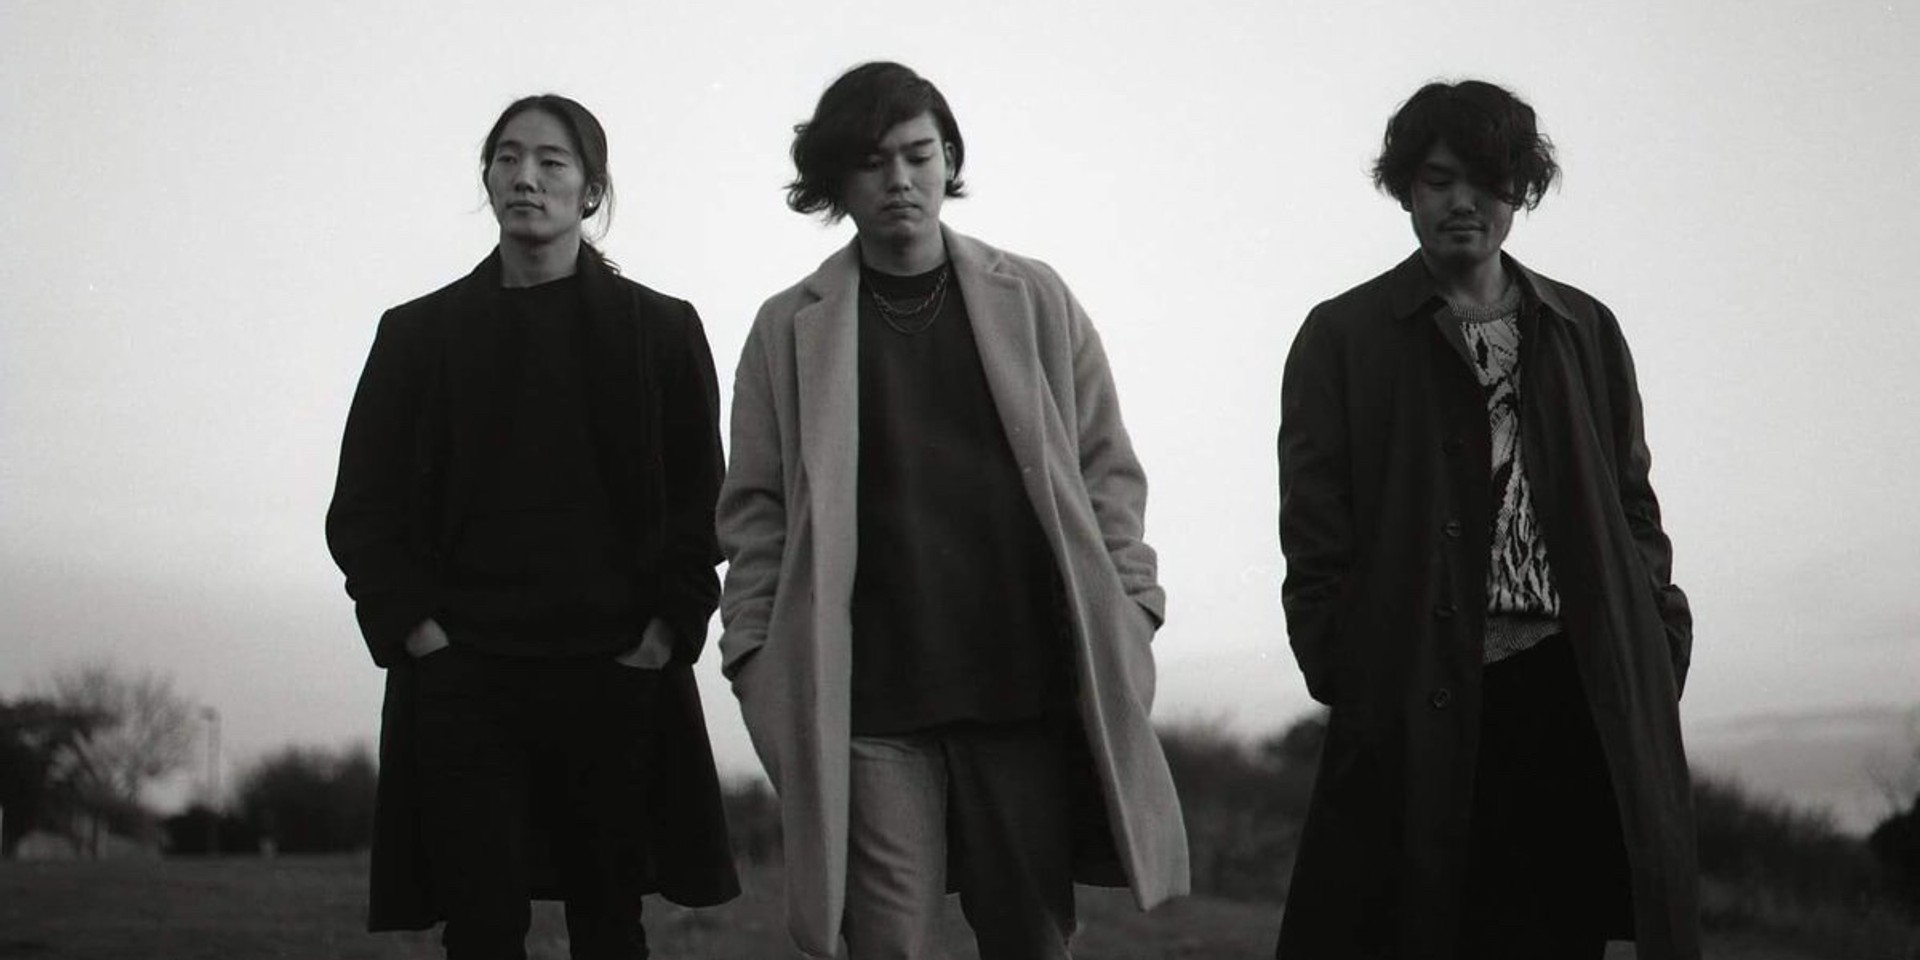 The fin. announce new album and Asian tour dates